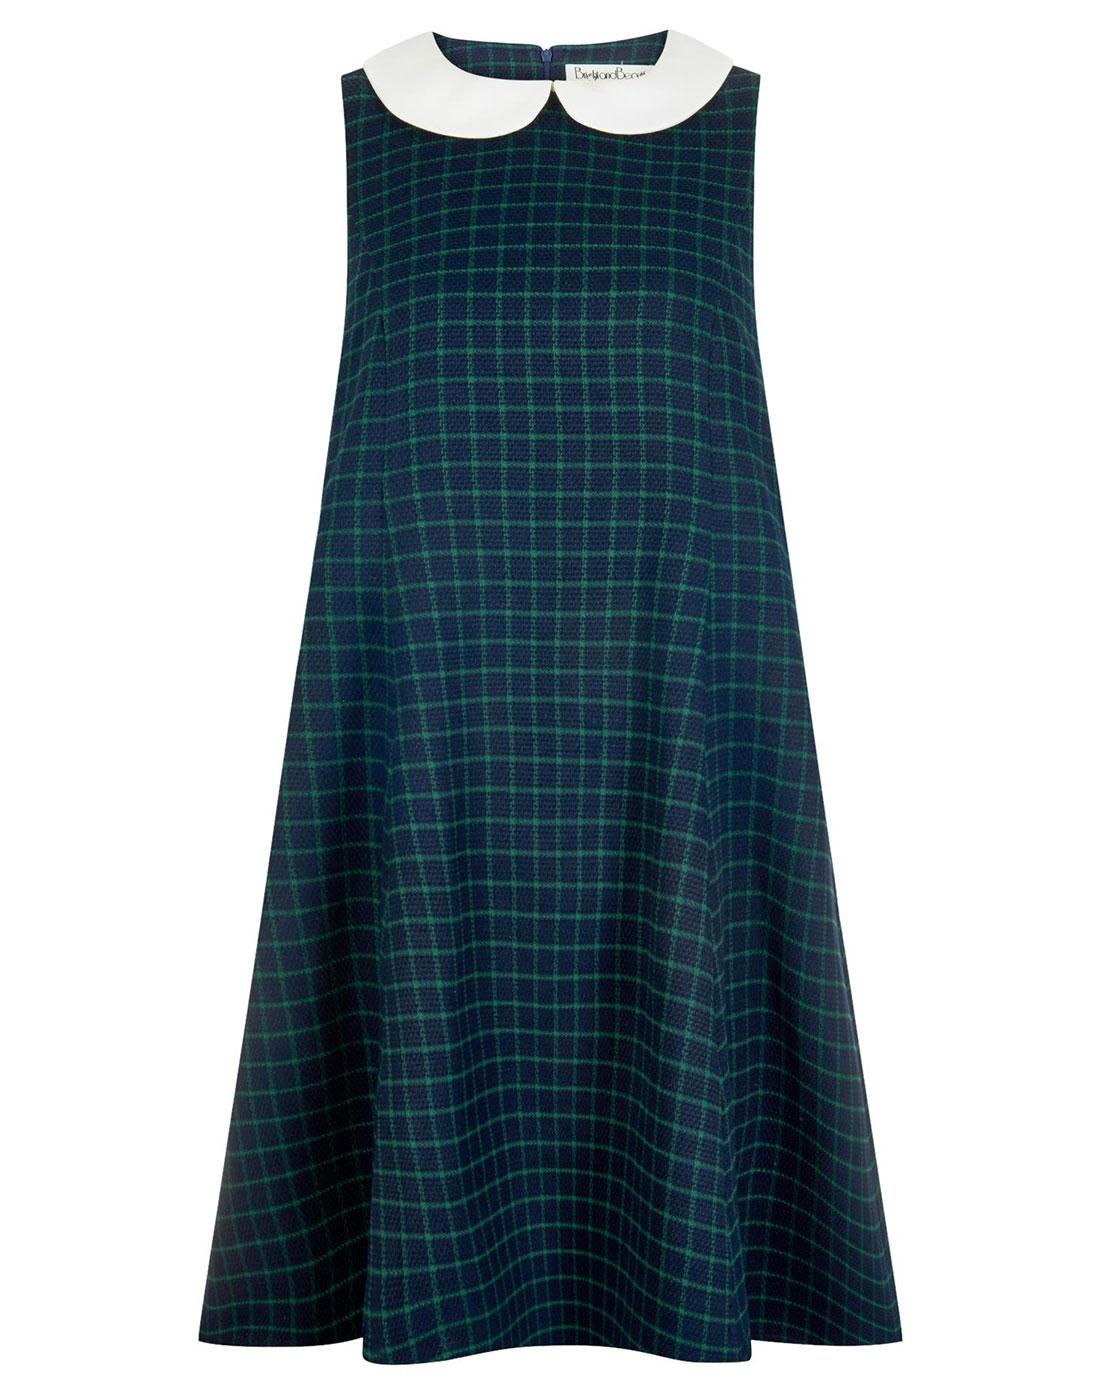 Nia BRIGHT & BEAUTIFUL Mod Check Baby Doll Dress